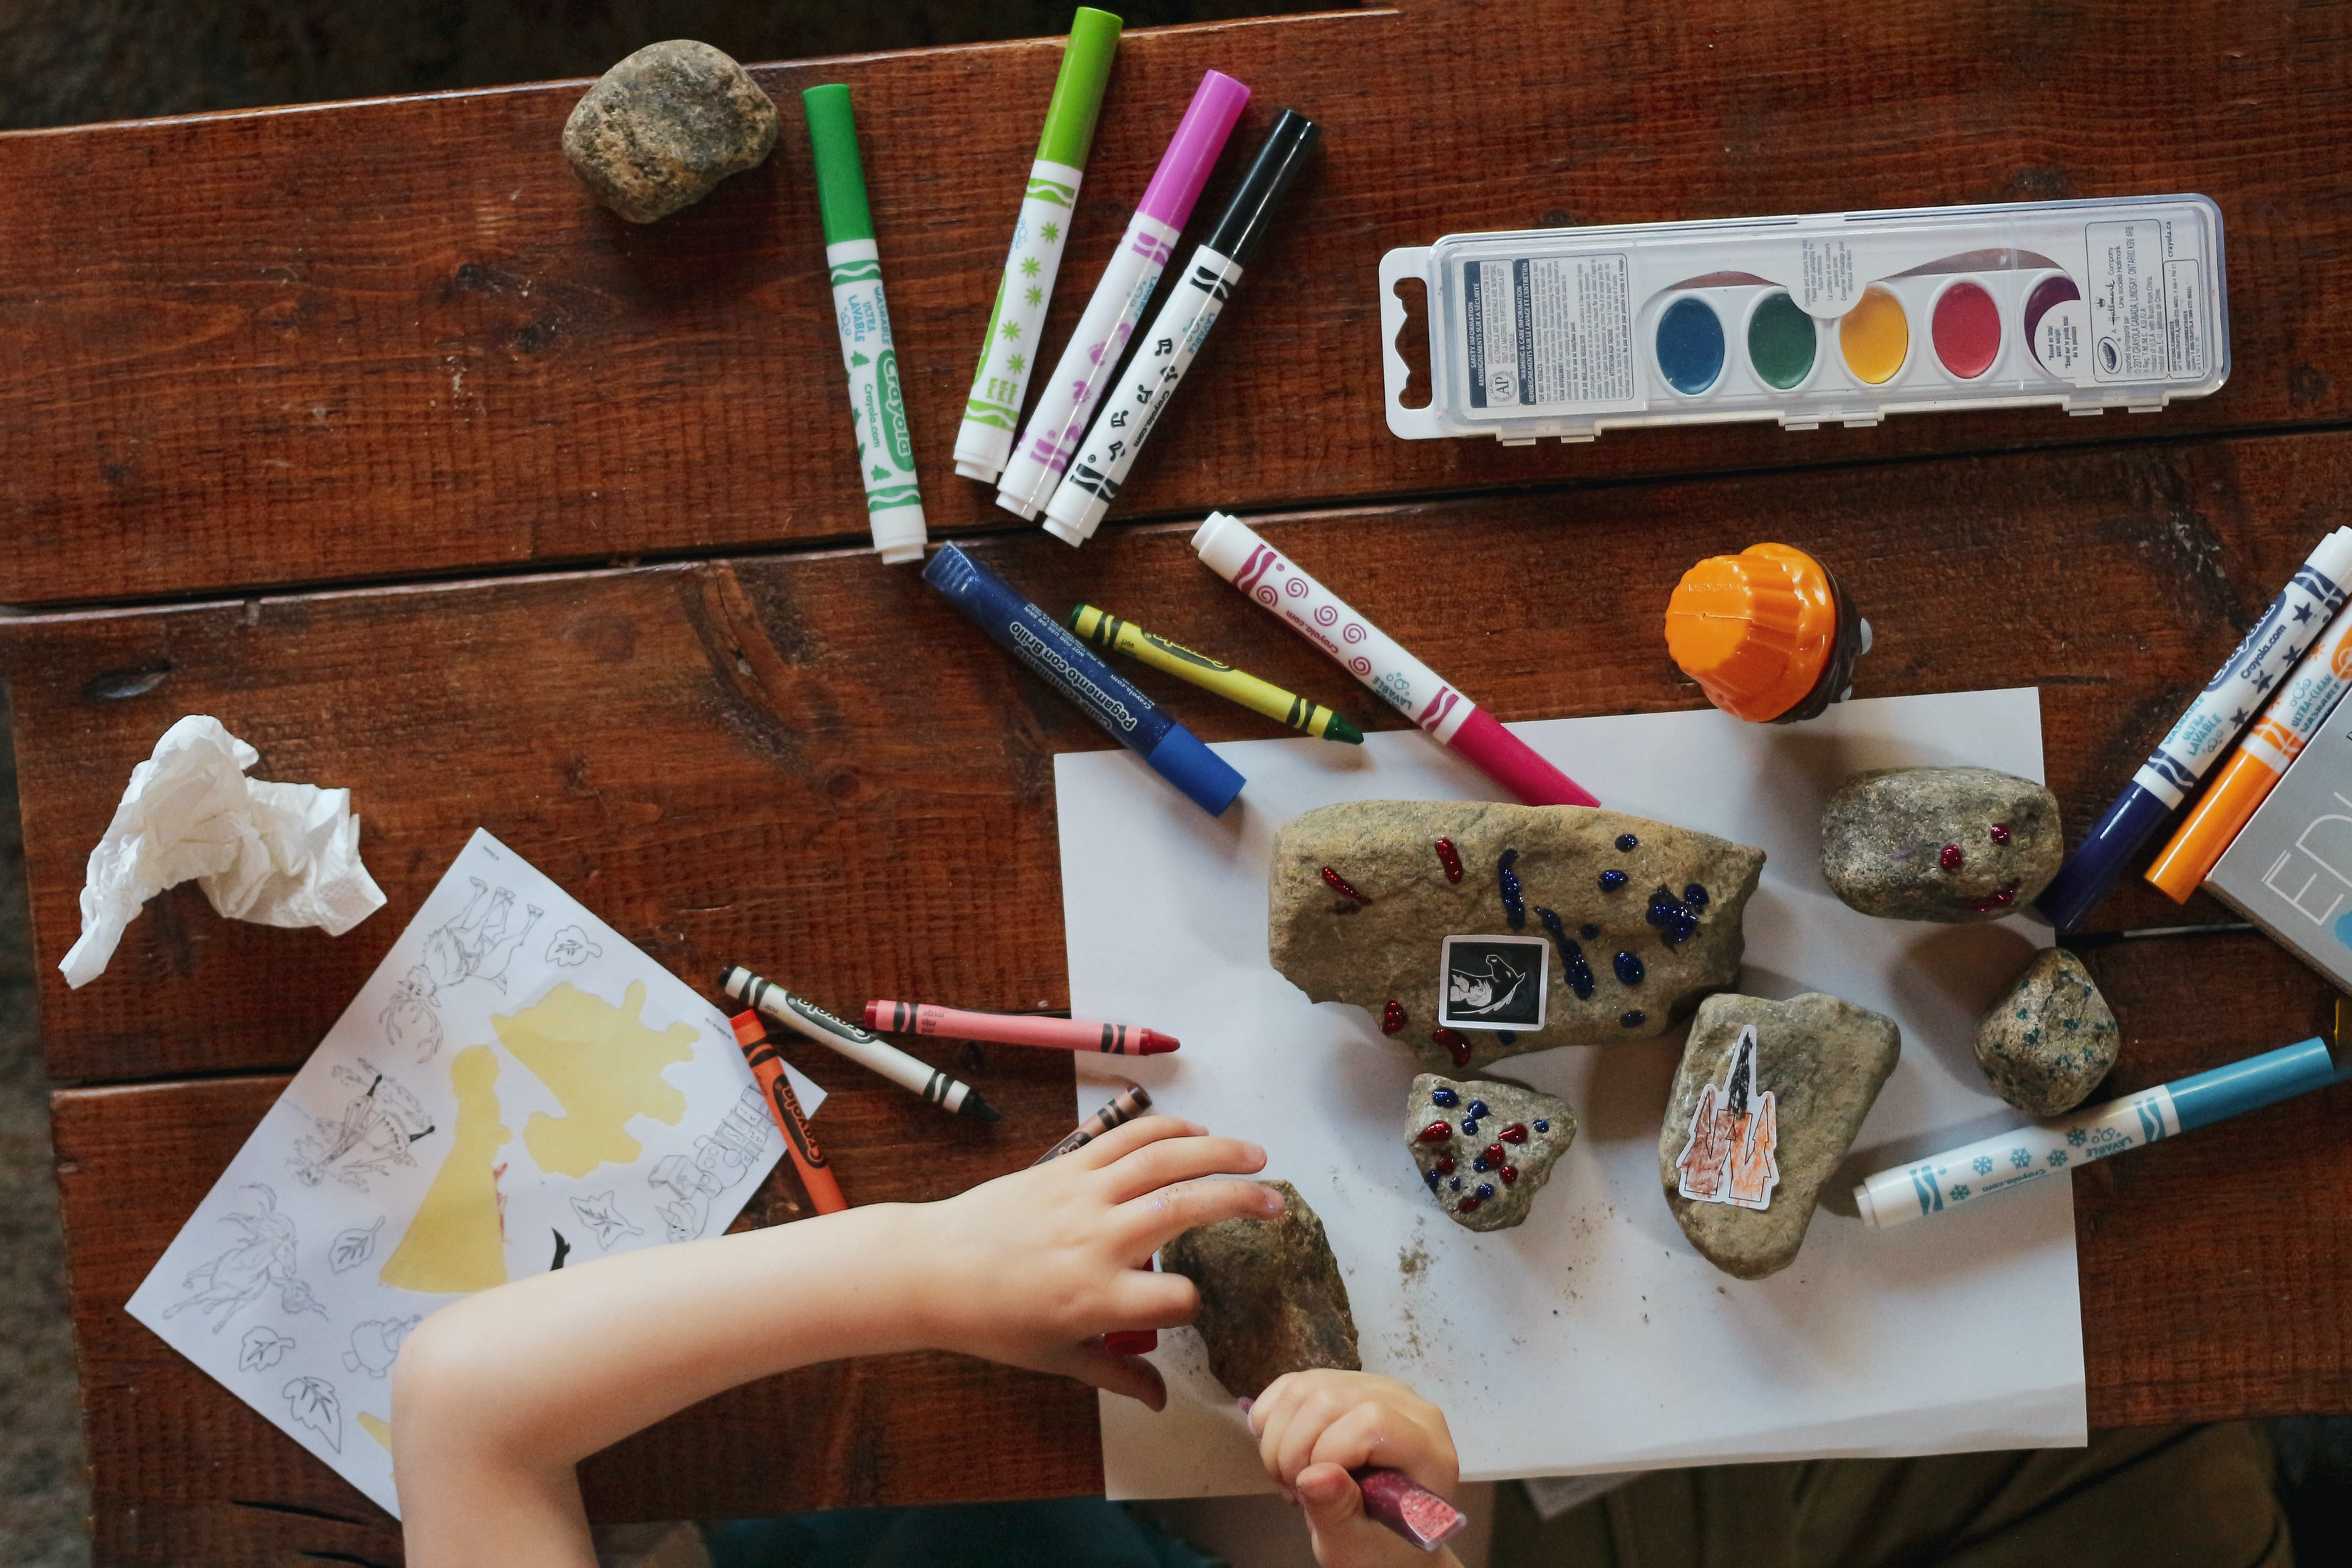 Kid drawing, crafting, and painting rocks.